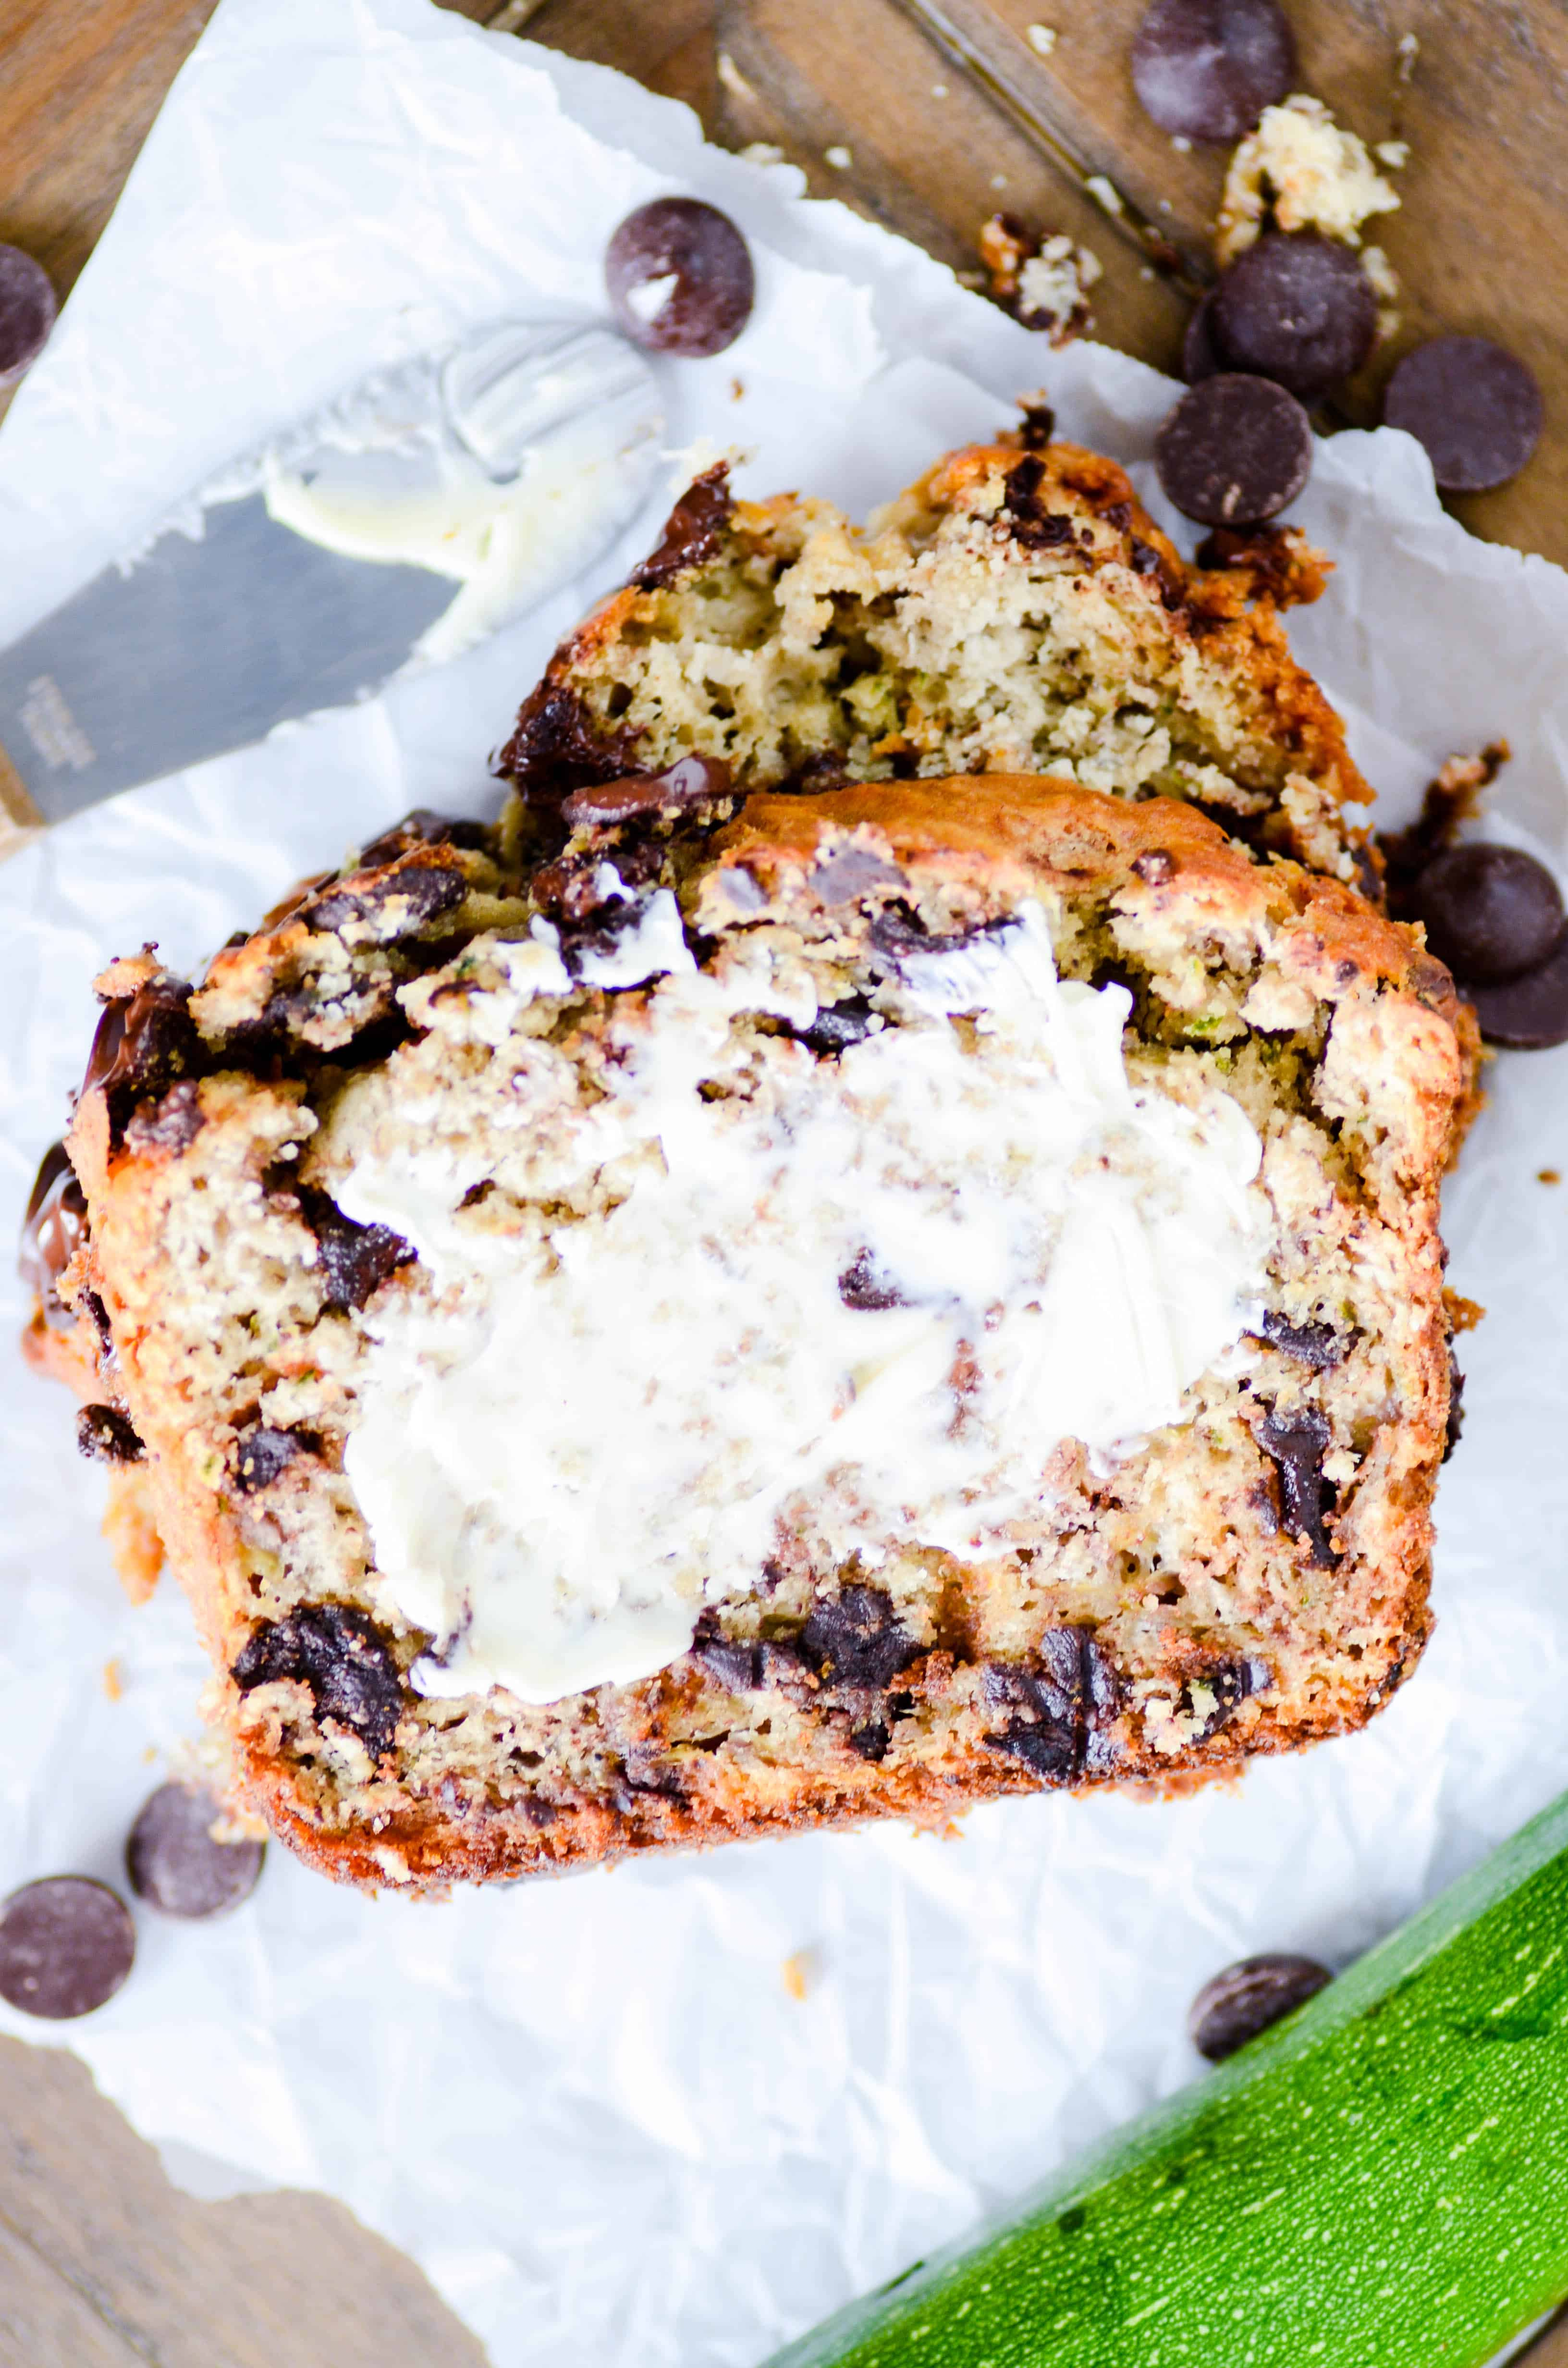 This chocolate chip zucchini bread is devilishly good. You'd never guess that it was full of fruits and veggies!